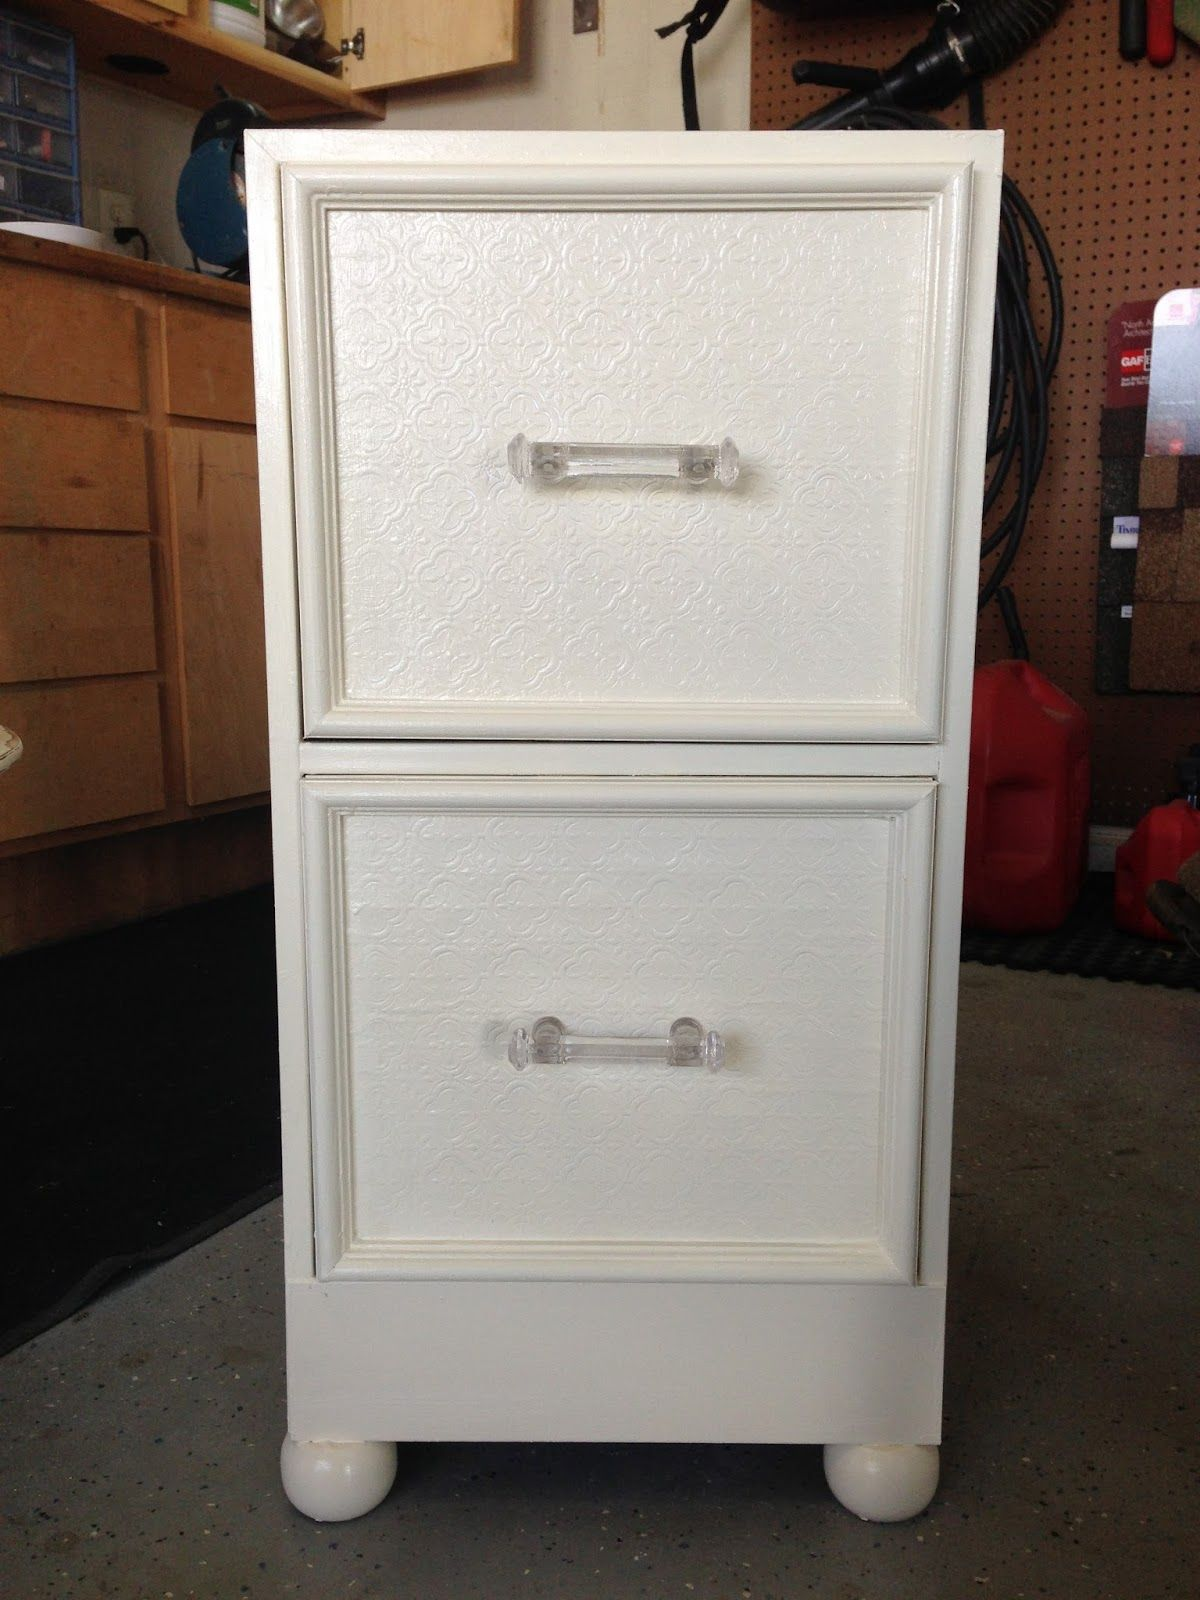 Metal Filing Cabinet Makeover By Adding Picture Frame Molding Feet New Handles